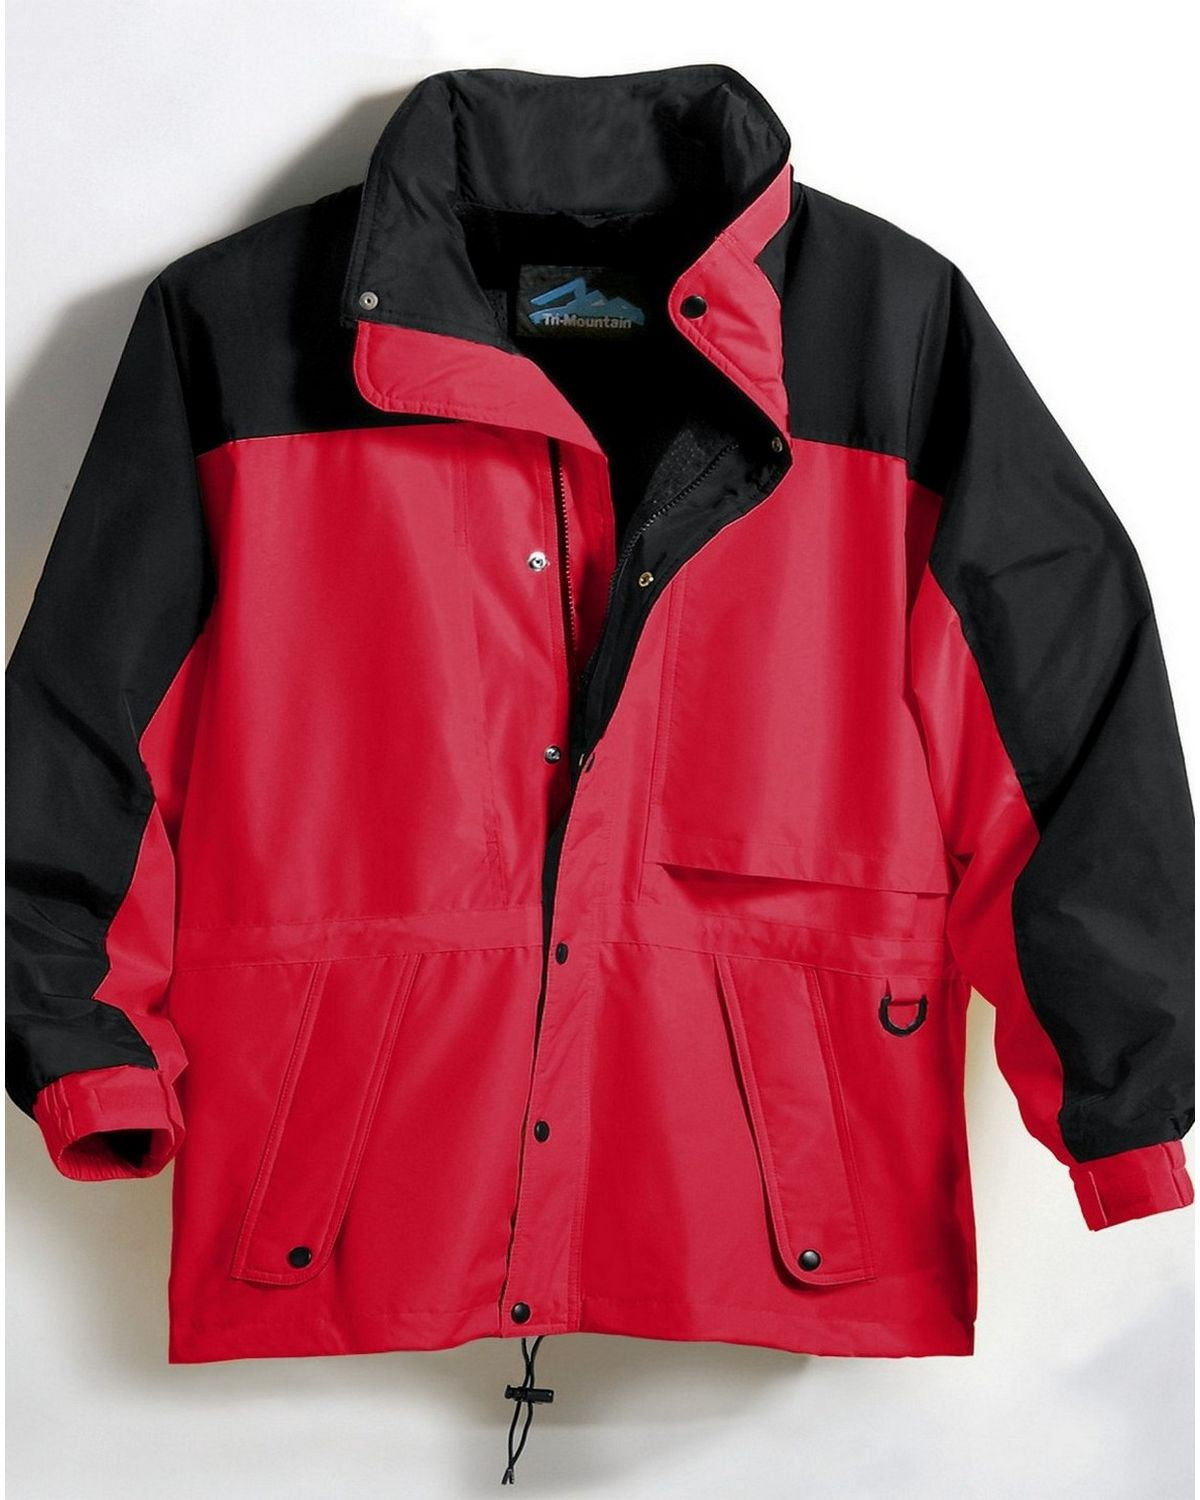 Tri-Mountain 9300 Climax - Red / Black - L 9300